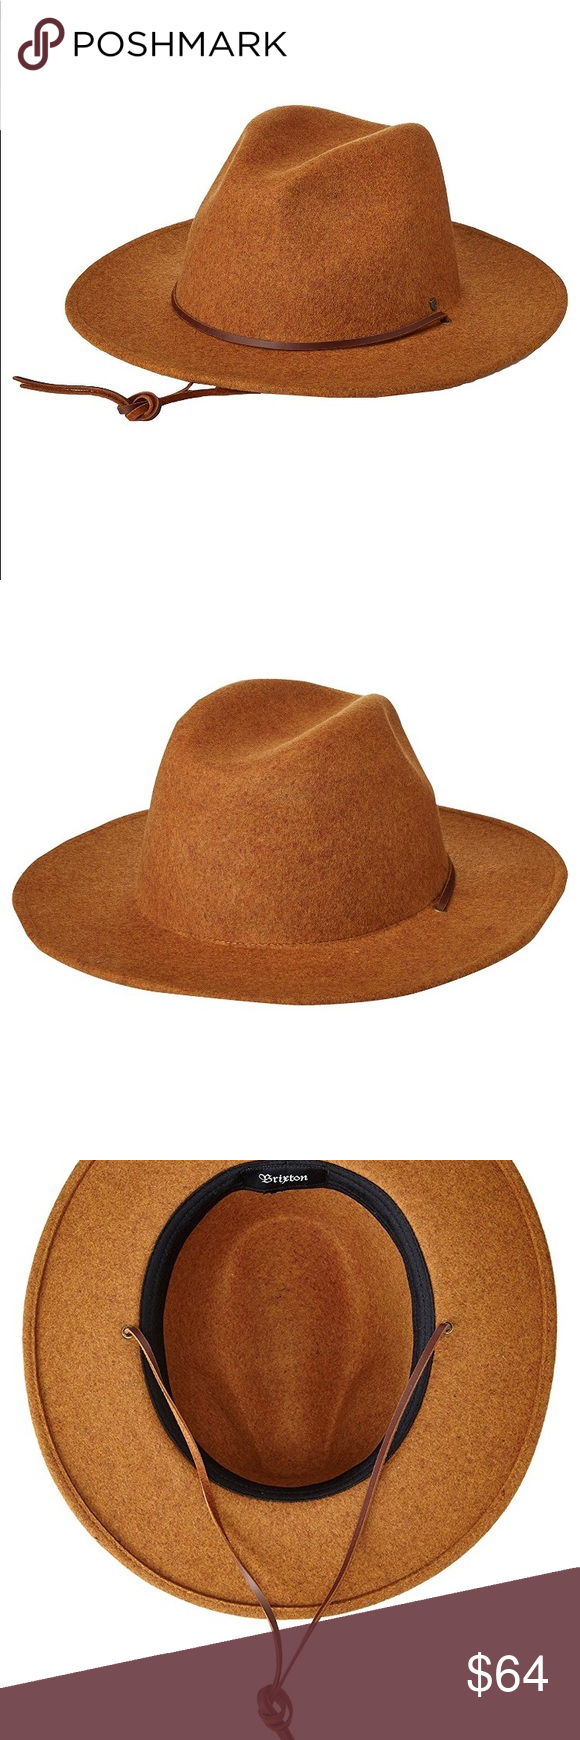 6a0348852a0 Field Wide Brim Felt Fedora Hat LARGE Color  Heather Coffee The field is a  wide